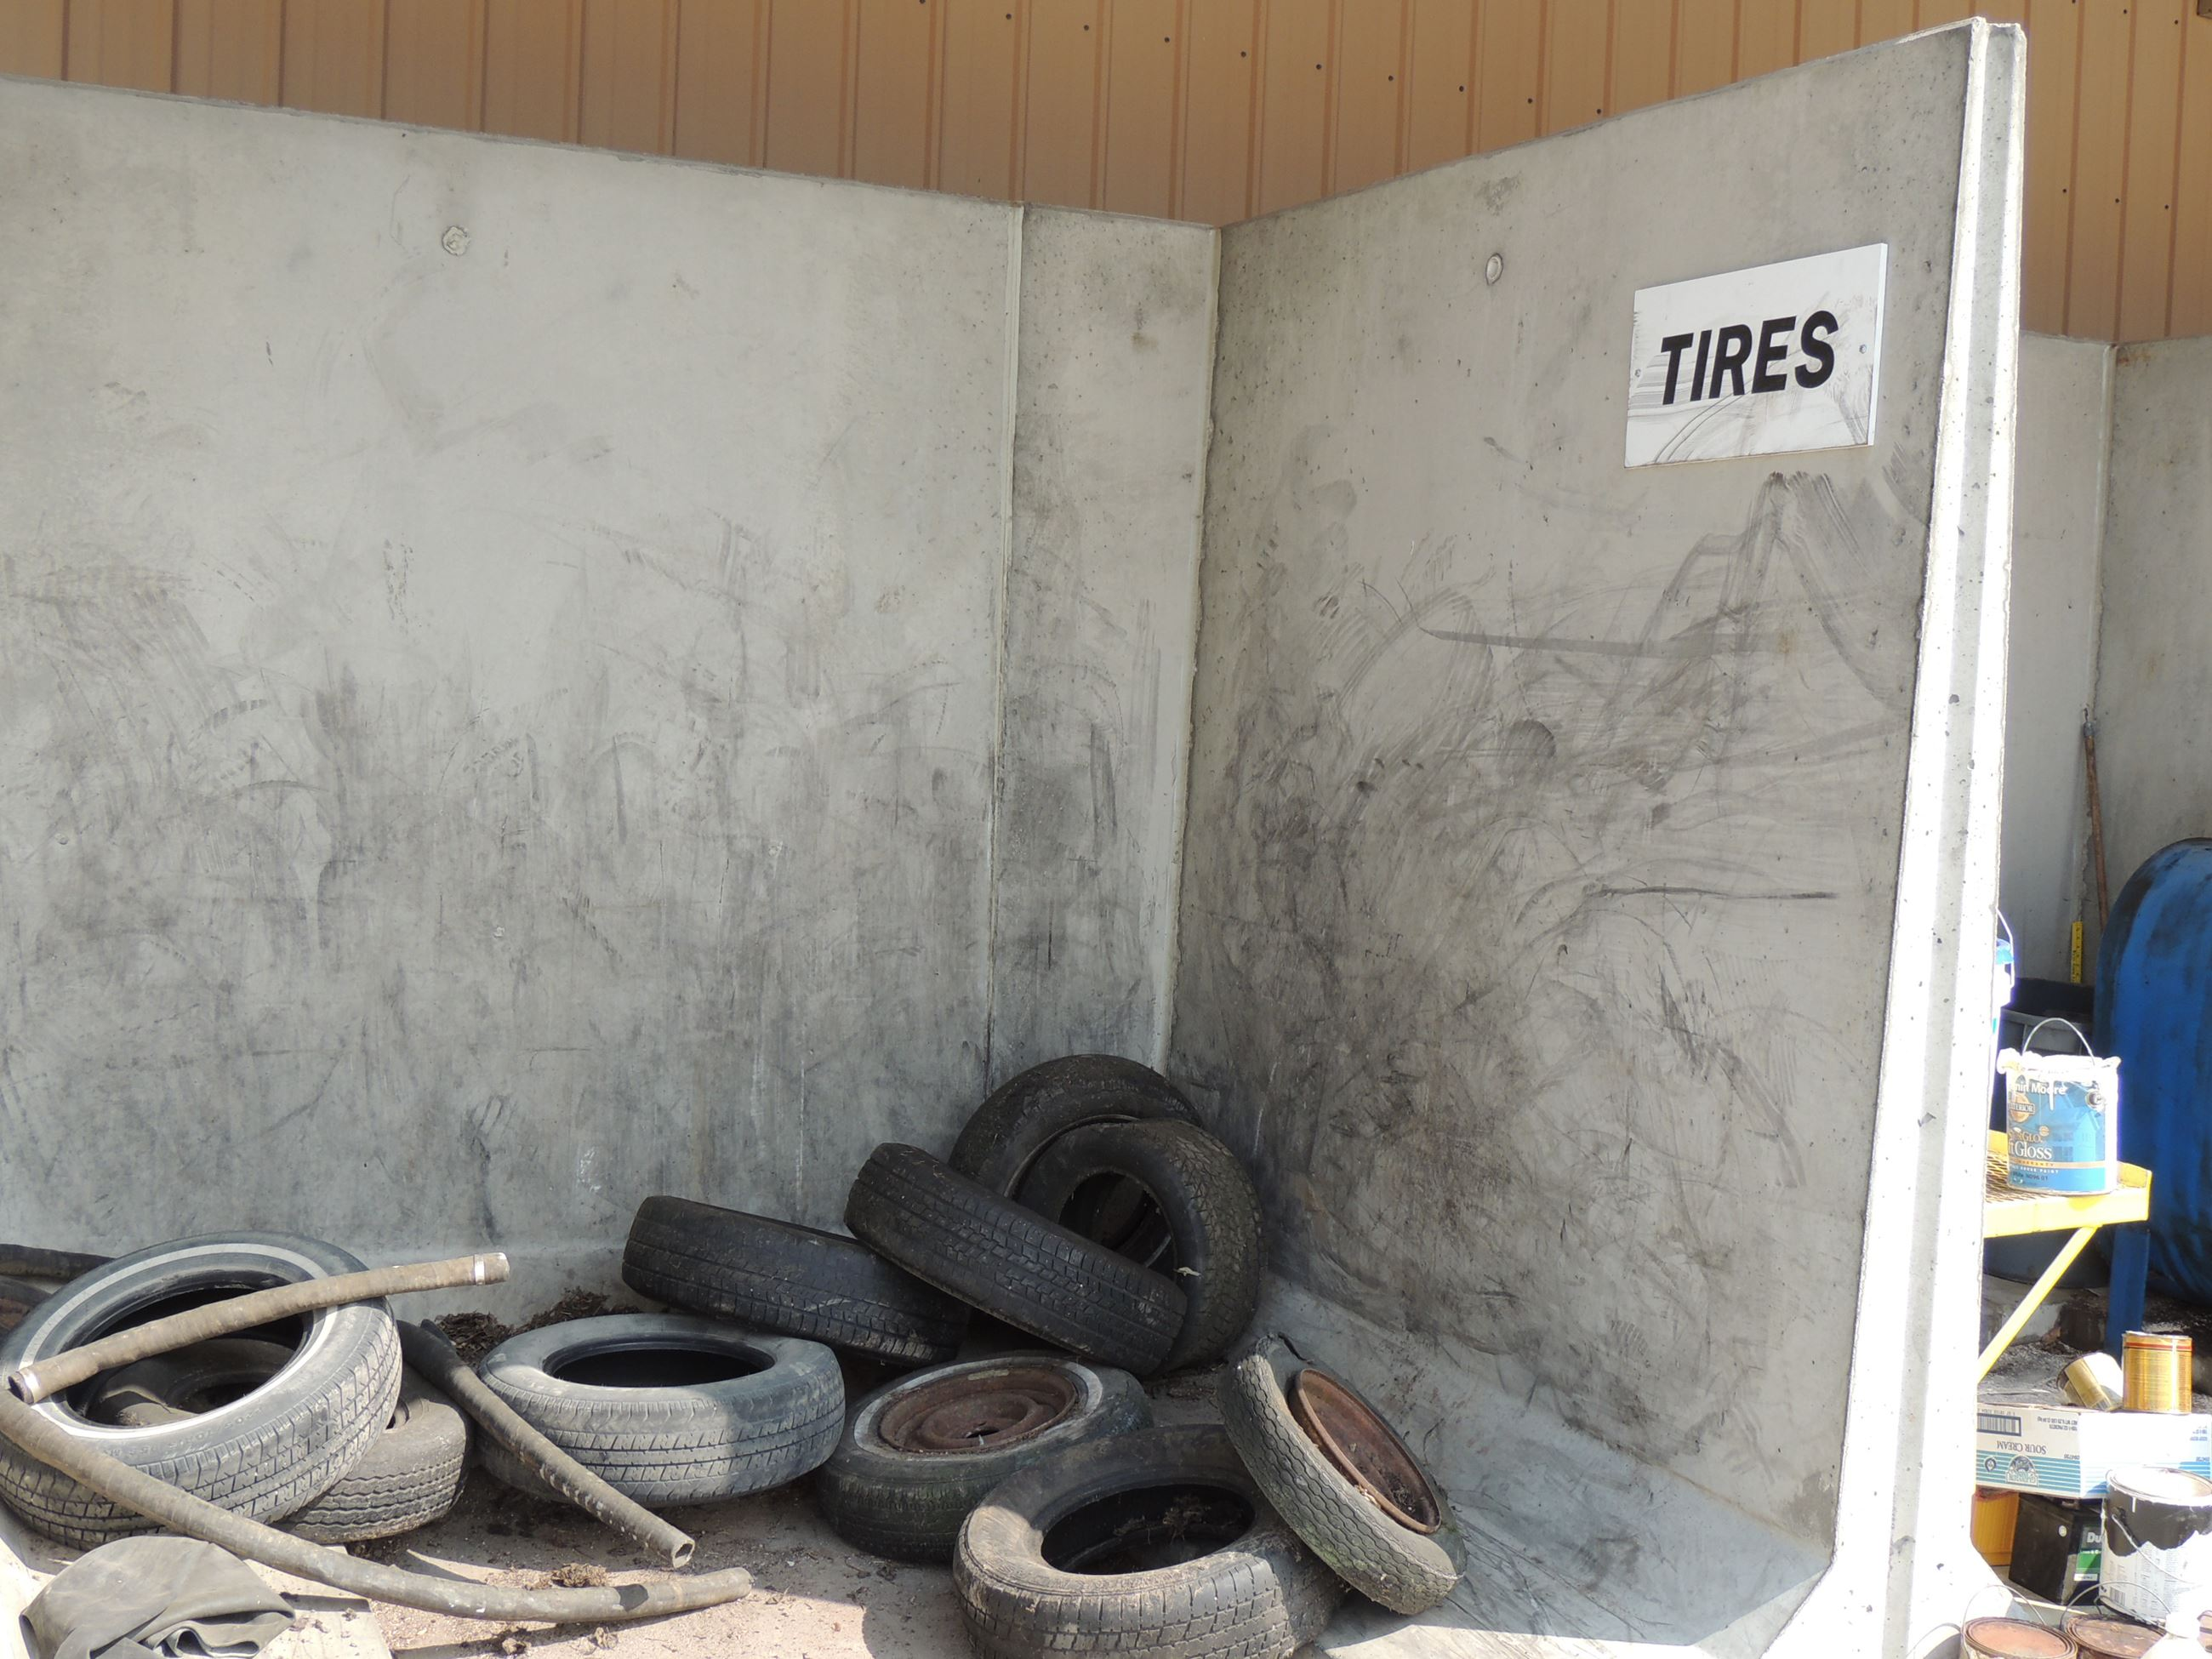 Tires Drop-Off Area